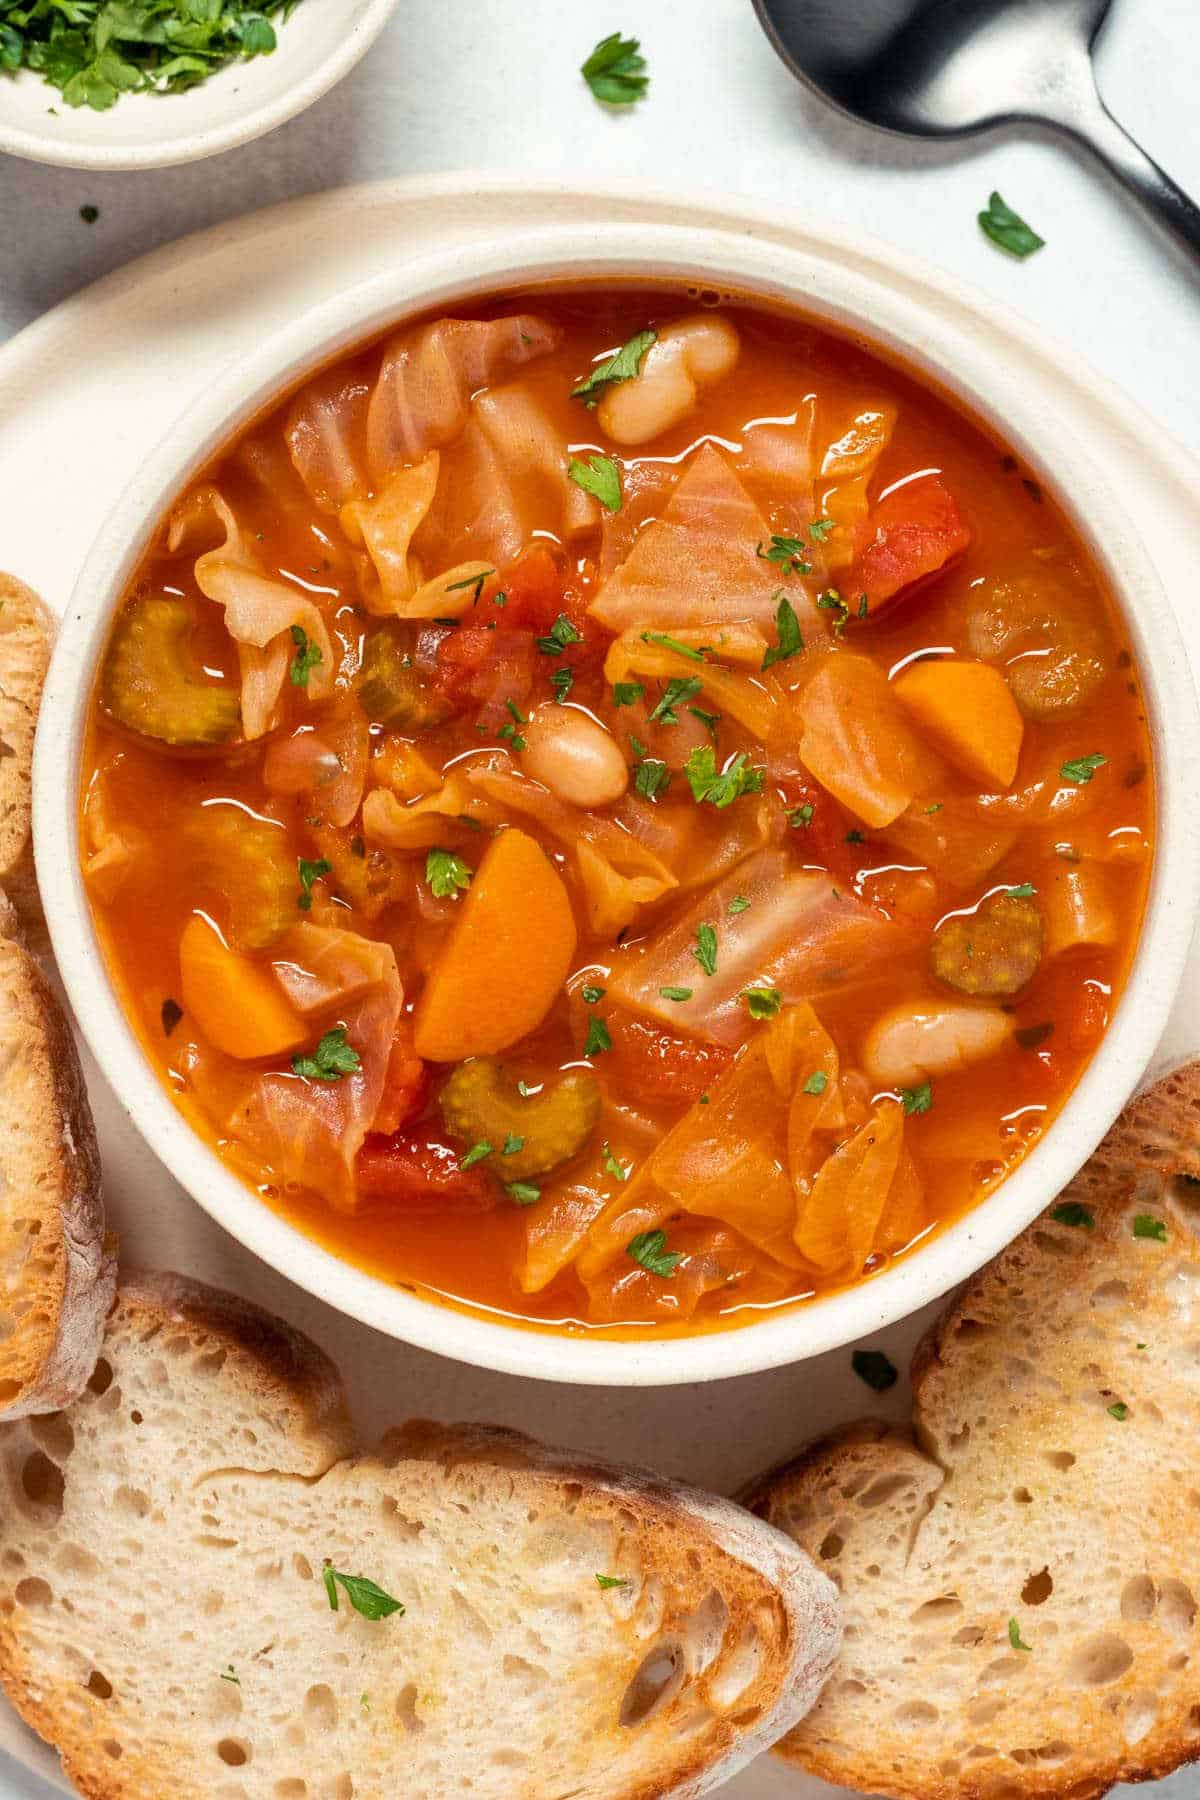 Vegan cabbage soup in a white bowl.